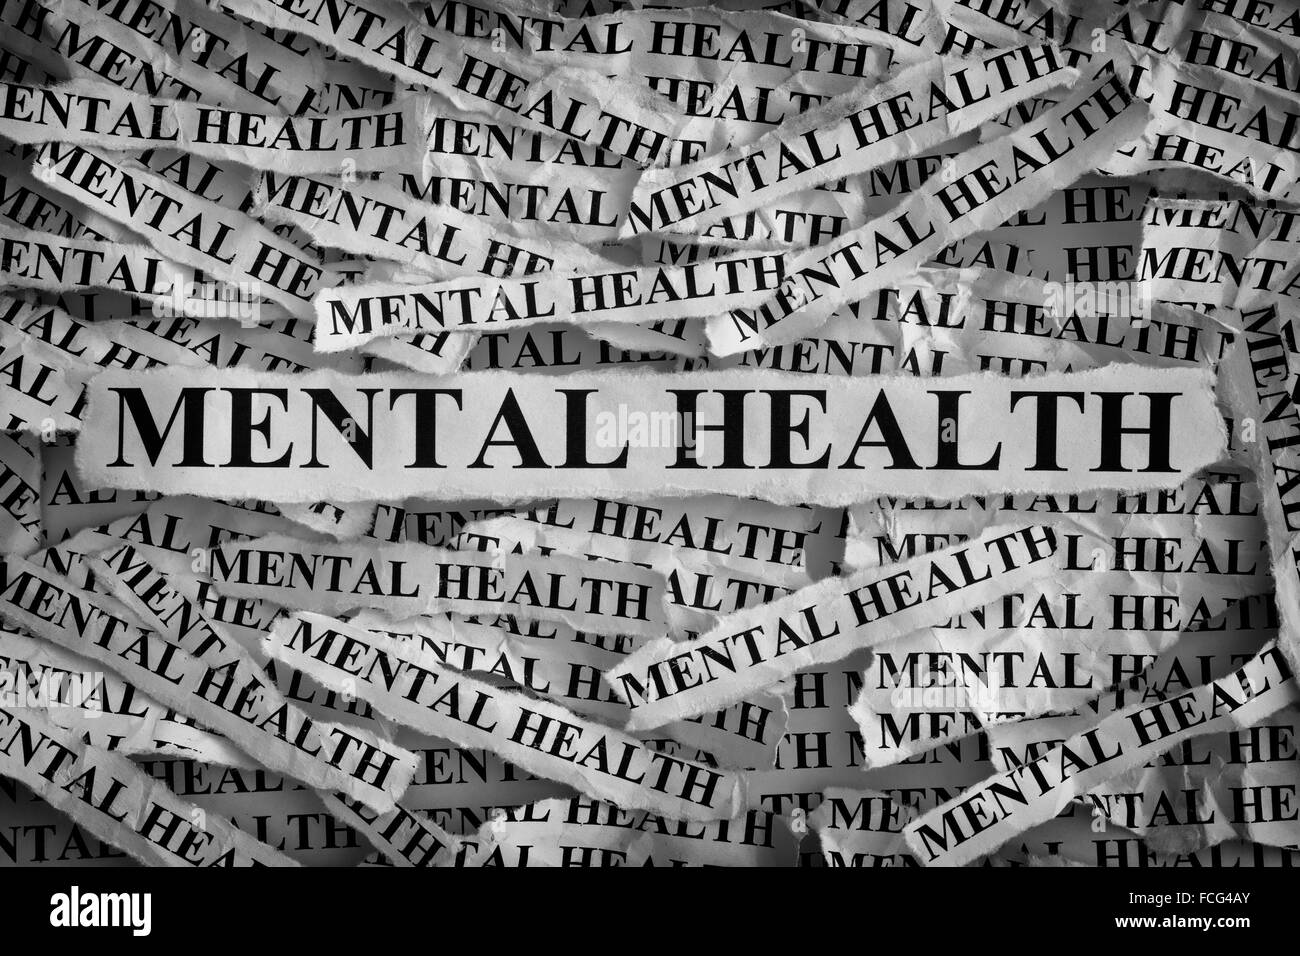 Mental health. Torn pieces of paper with the words Mental health. Concept Image. Black and White. Closeup. - Stock Image